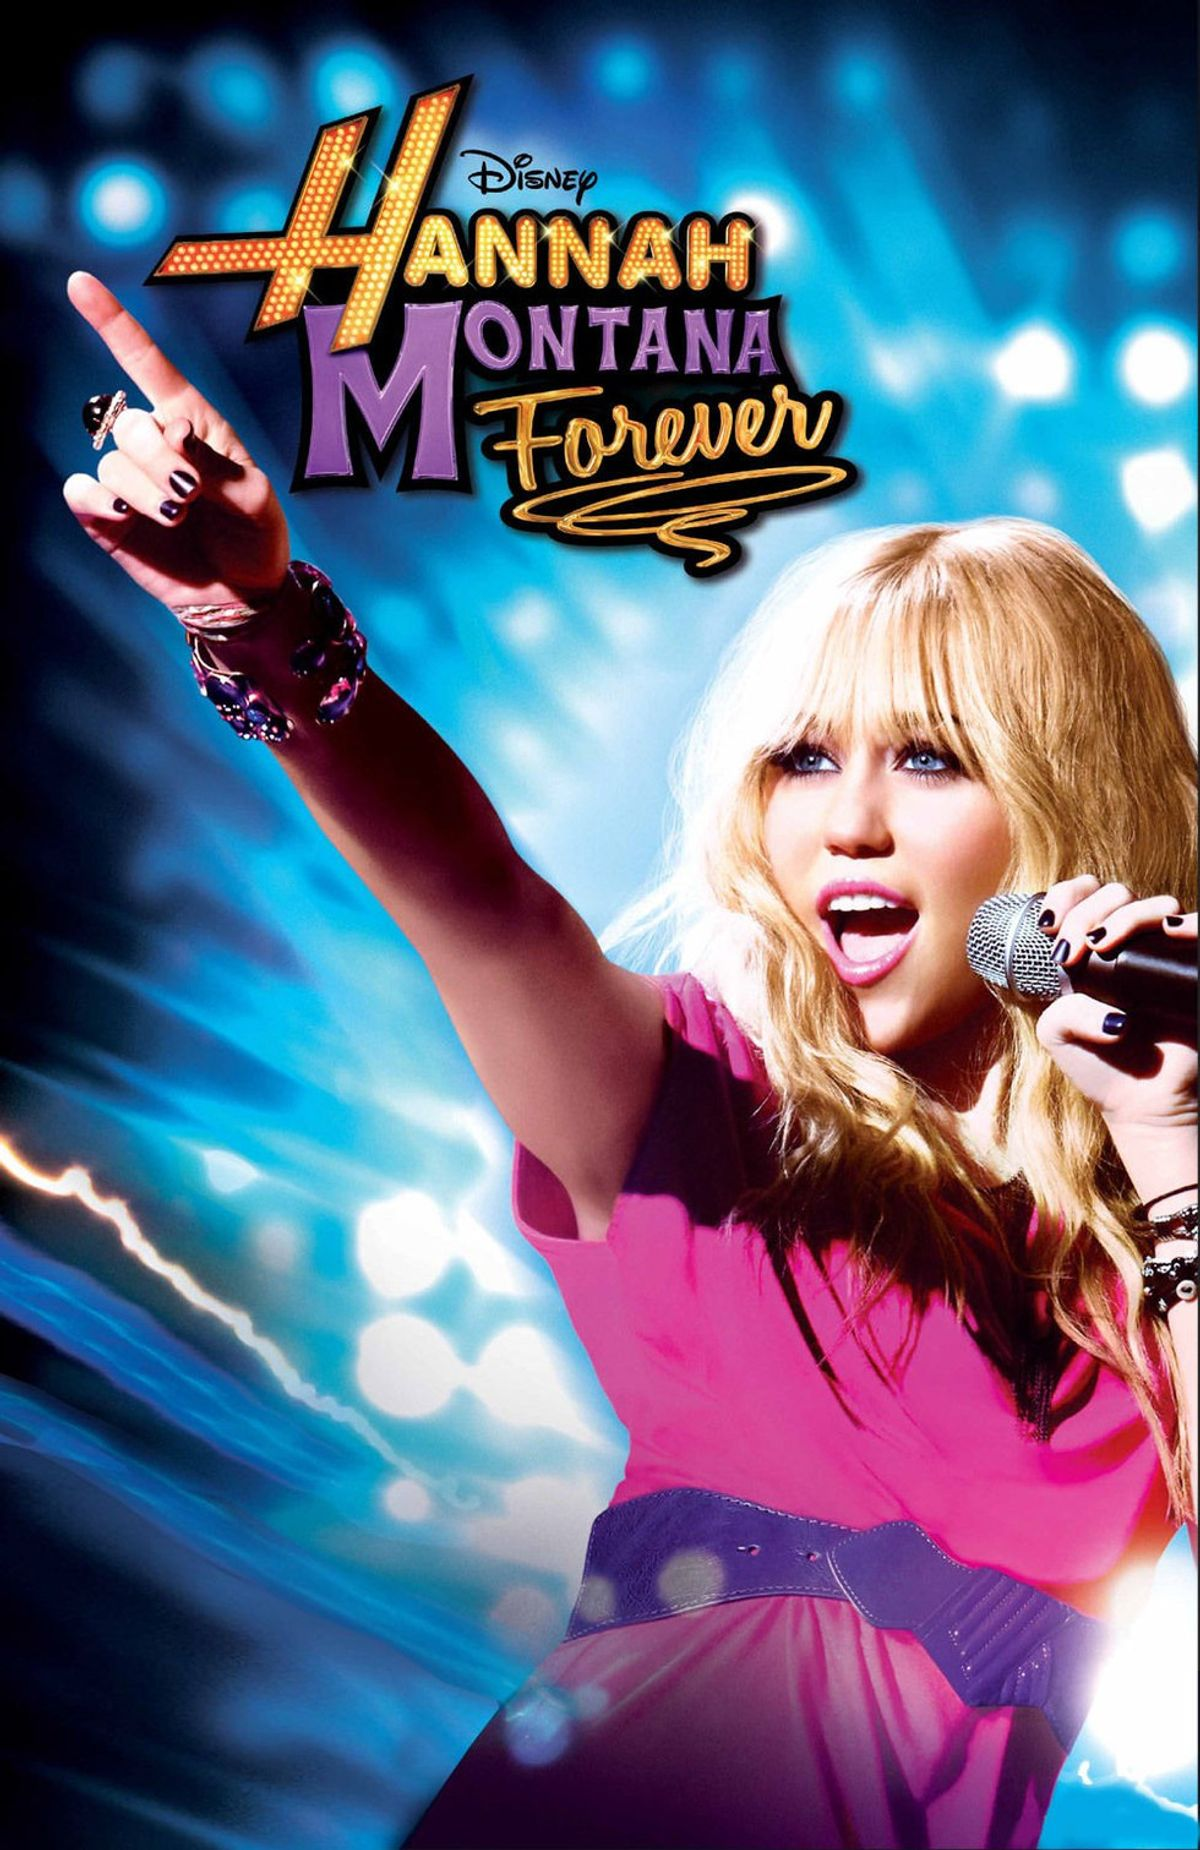 11 Lessons Hannah Montana Taught Us